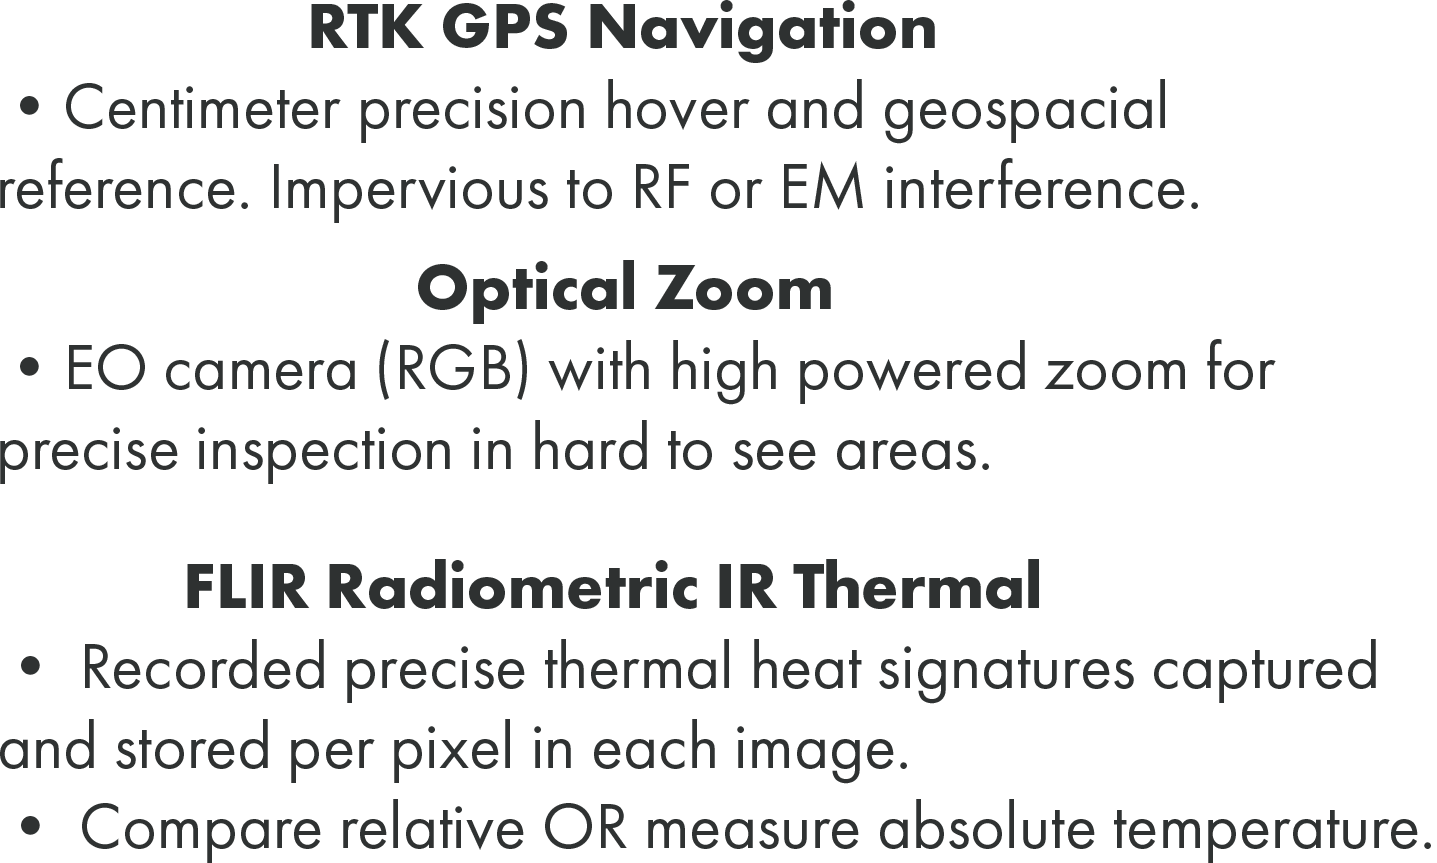 Centimeter precision hover and geospacial reference. Impervious to RF or EM interference. EO camera (RGB) with high powered zoom for precise inspection in hard to see areas. Recorded precise thermal heat signatures captured and stored per pixel in each image. • Compare relative OR measure absolute temperature.